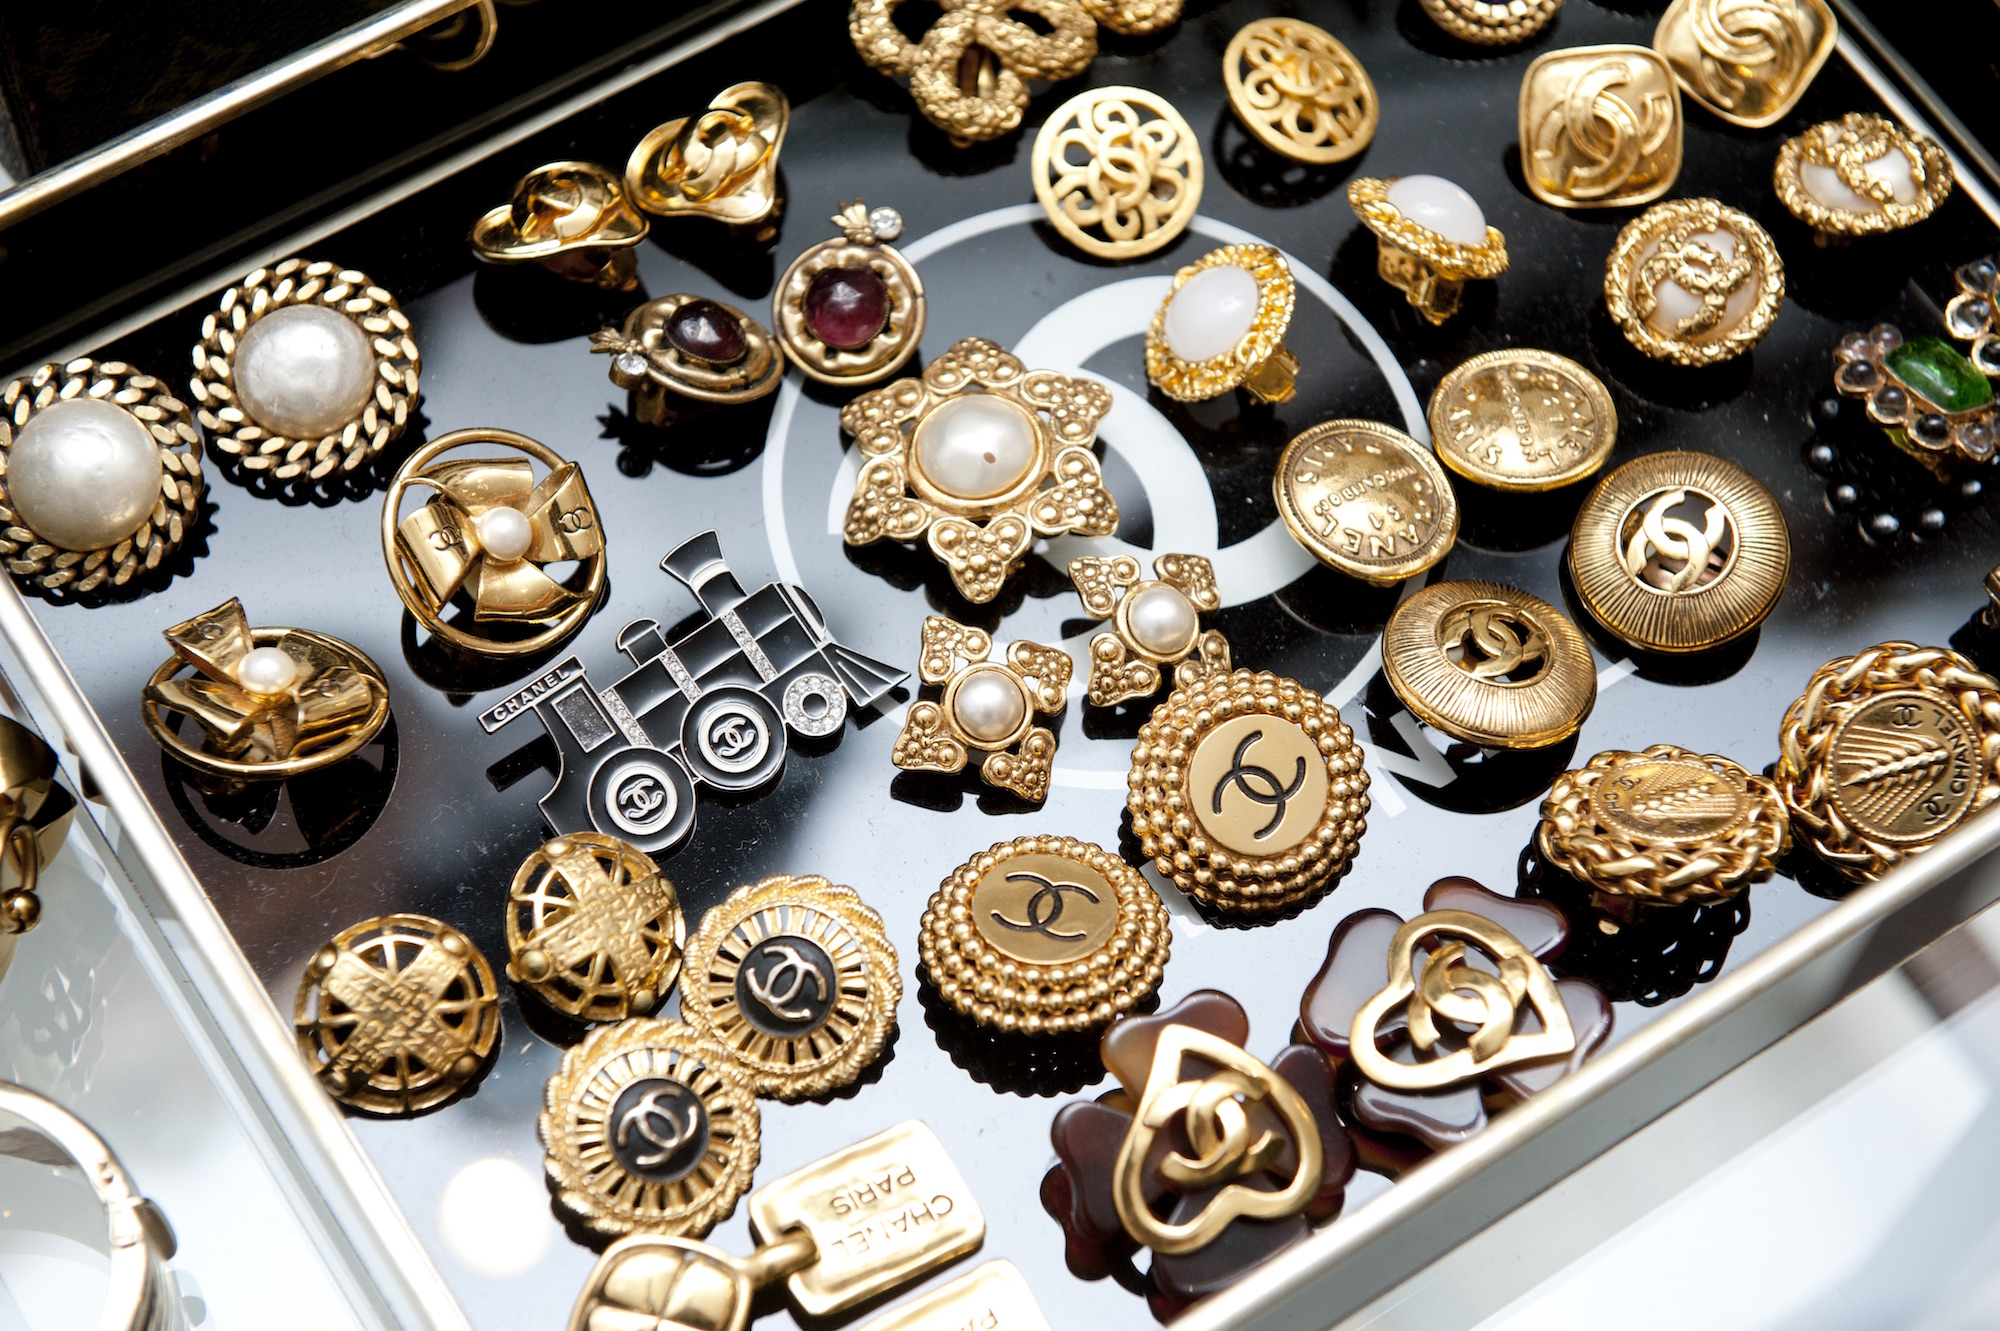 A display of vintage Chanel jewelry